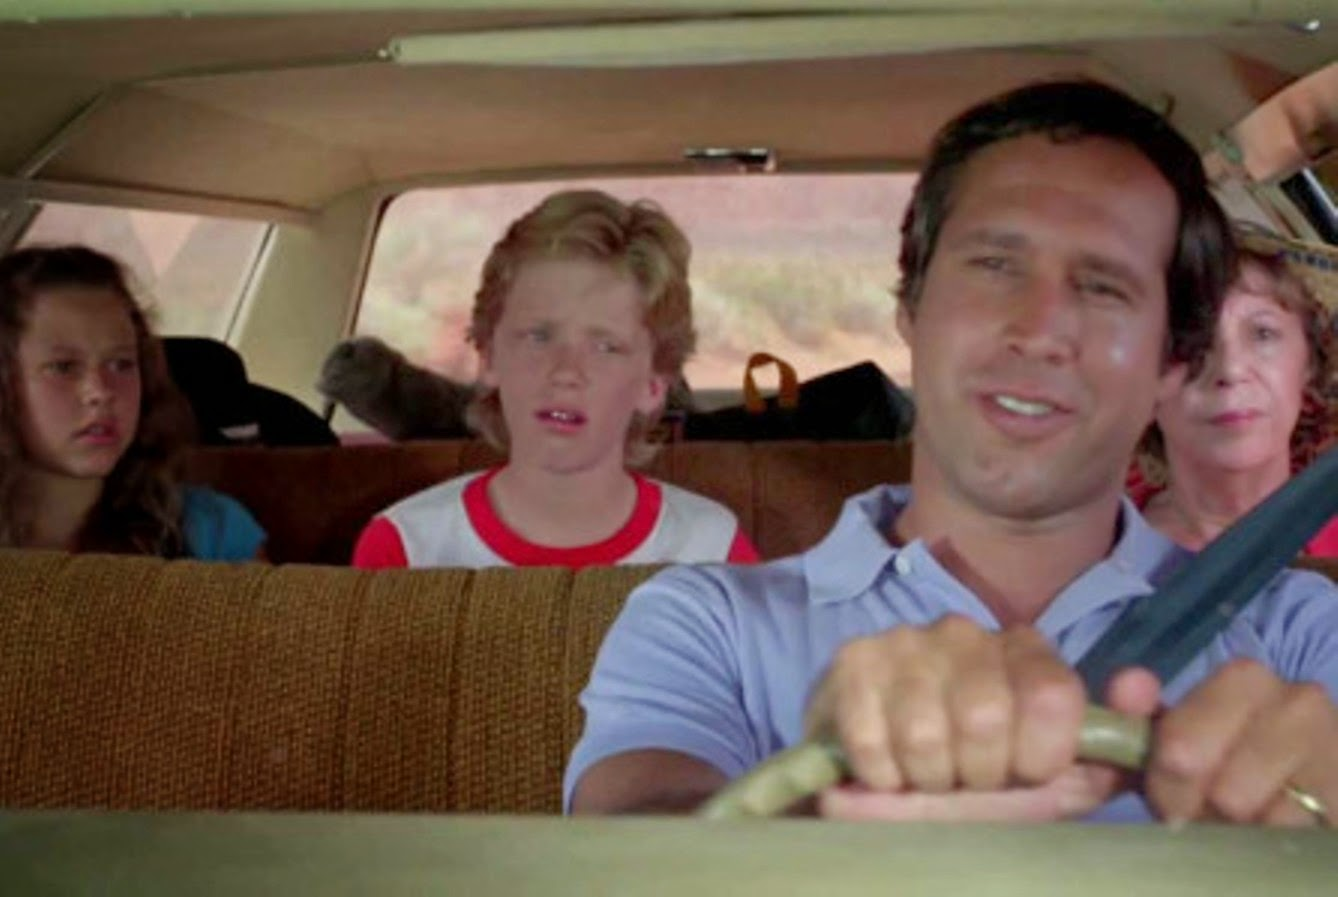 If You Are Up For A Fun Movie Date The Fifth Theatrical Instalment Of National Lampoons Vacation Series May Be Right One